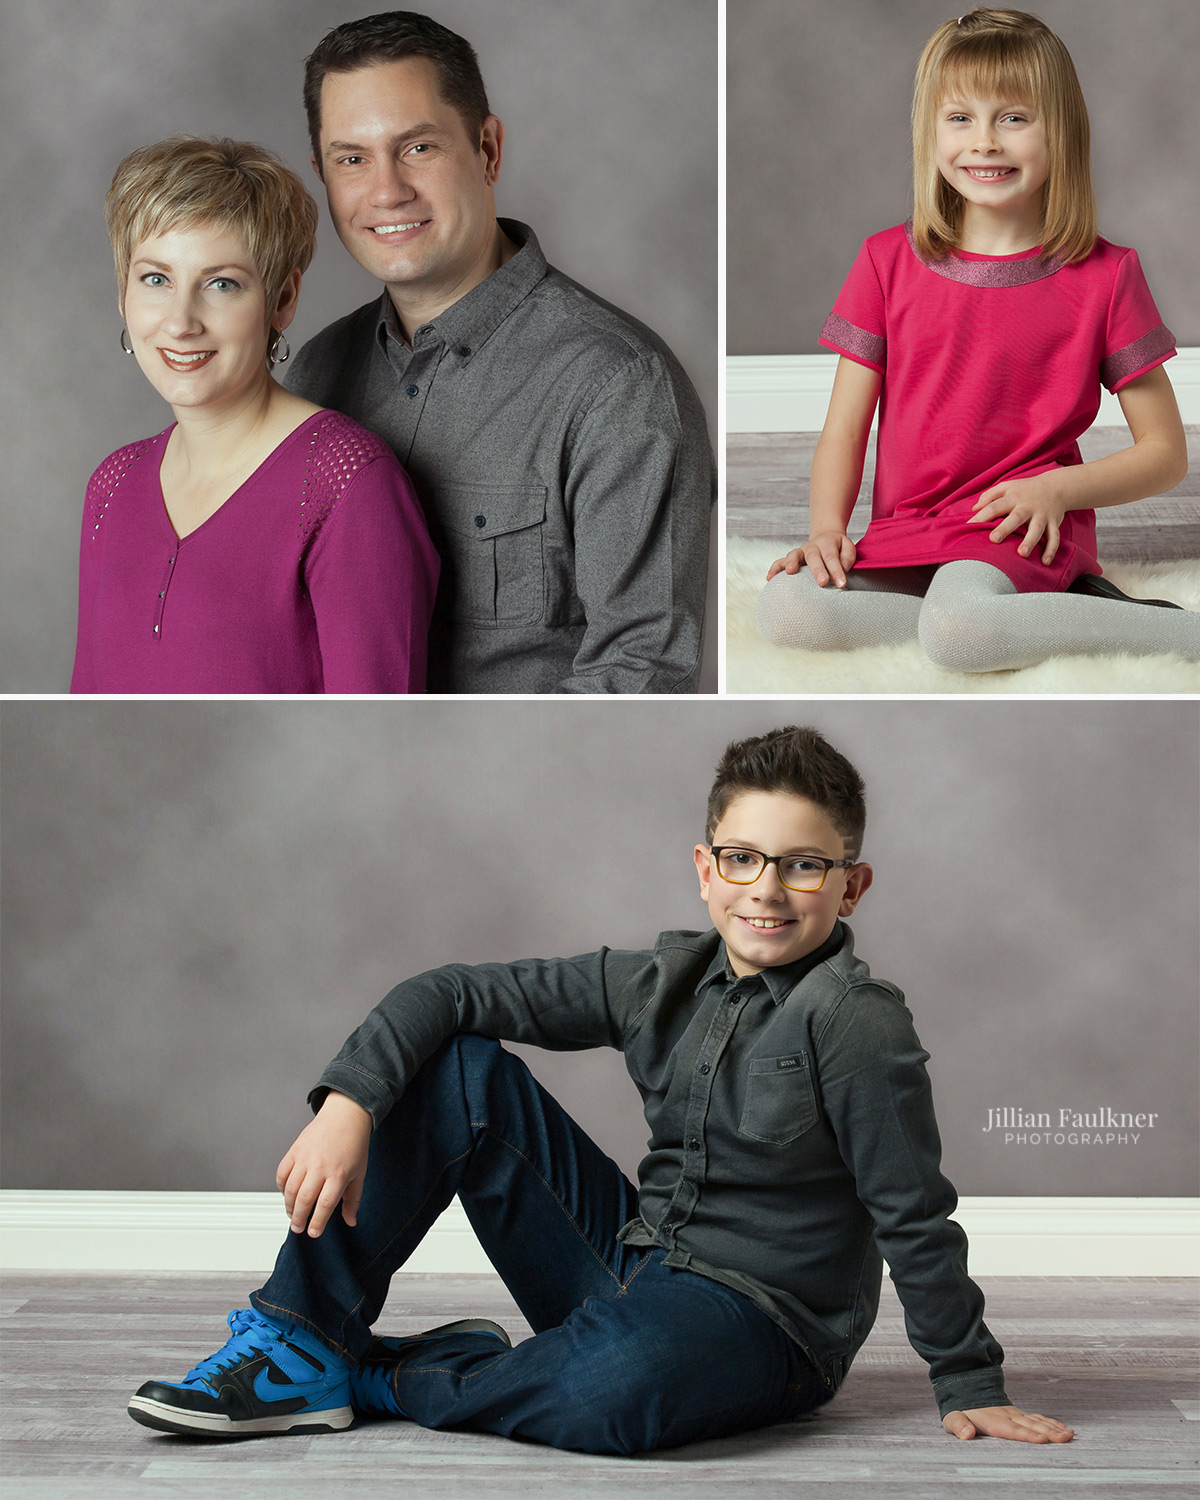 Jillian Faulkner is a professional photographer based in Calgary, Alberta offering customized maternity, newborn, child and family portrait photography sessions both on location and in studio.